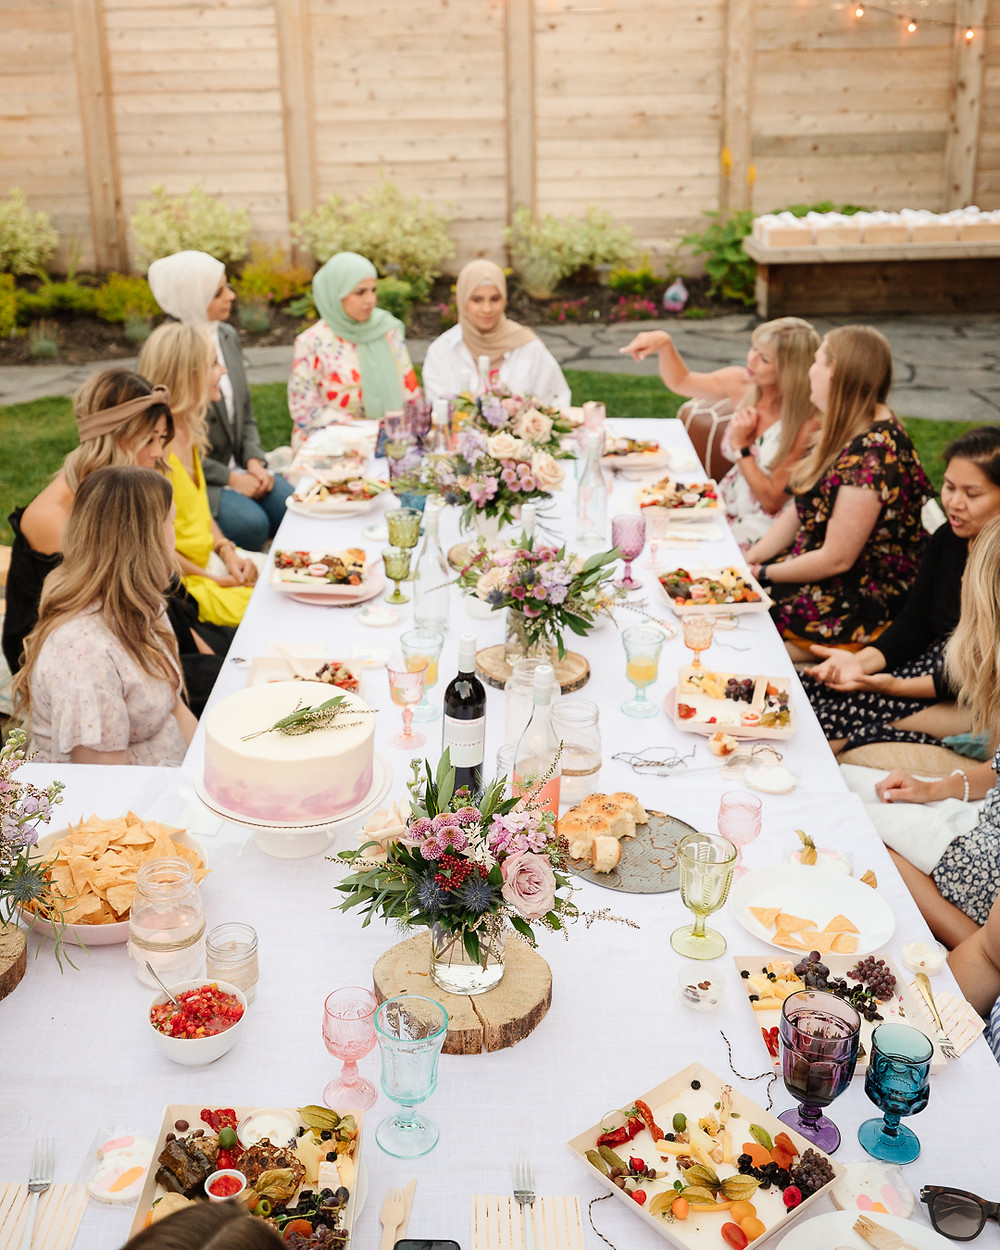 An evening backyard boho garden party with gorgeous flowers, vintage rugs, charcuterie wine, twinkle lights, coloured glasses, boho decor and all your best girlfriends.